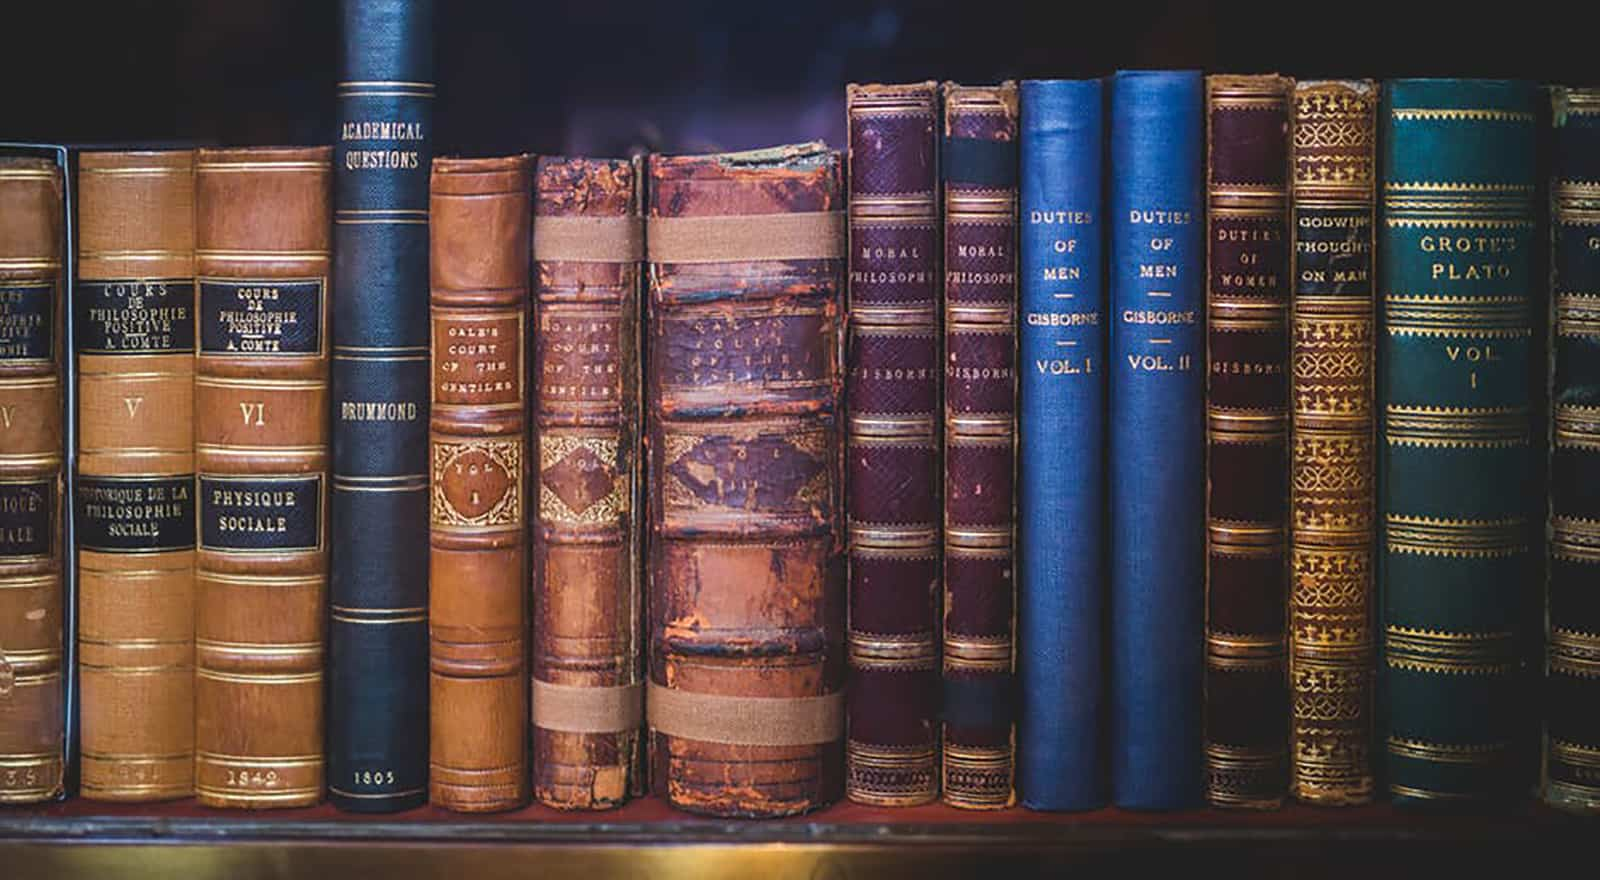 bookshelf with books containing legalese